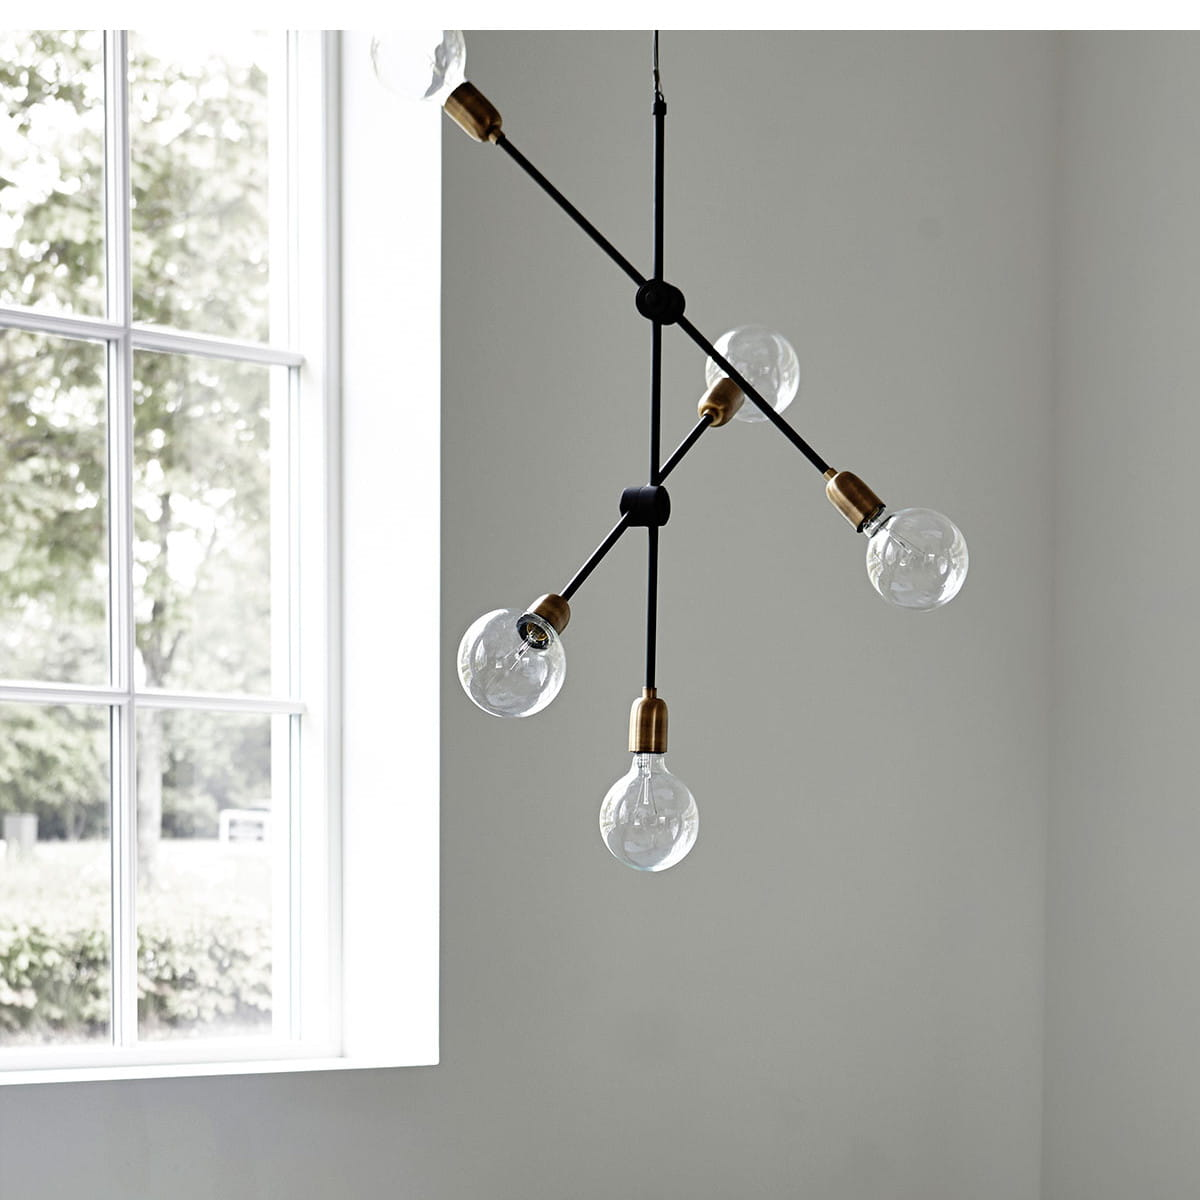 pendant lamp molecular ii house doctor nordic decoration